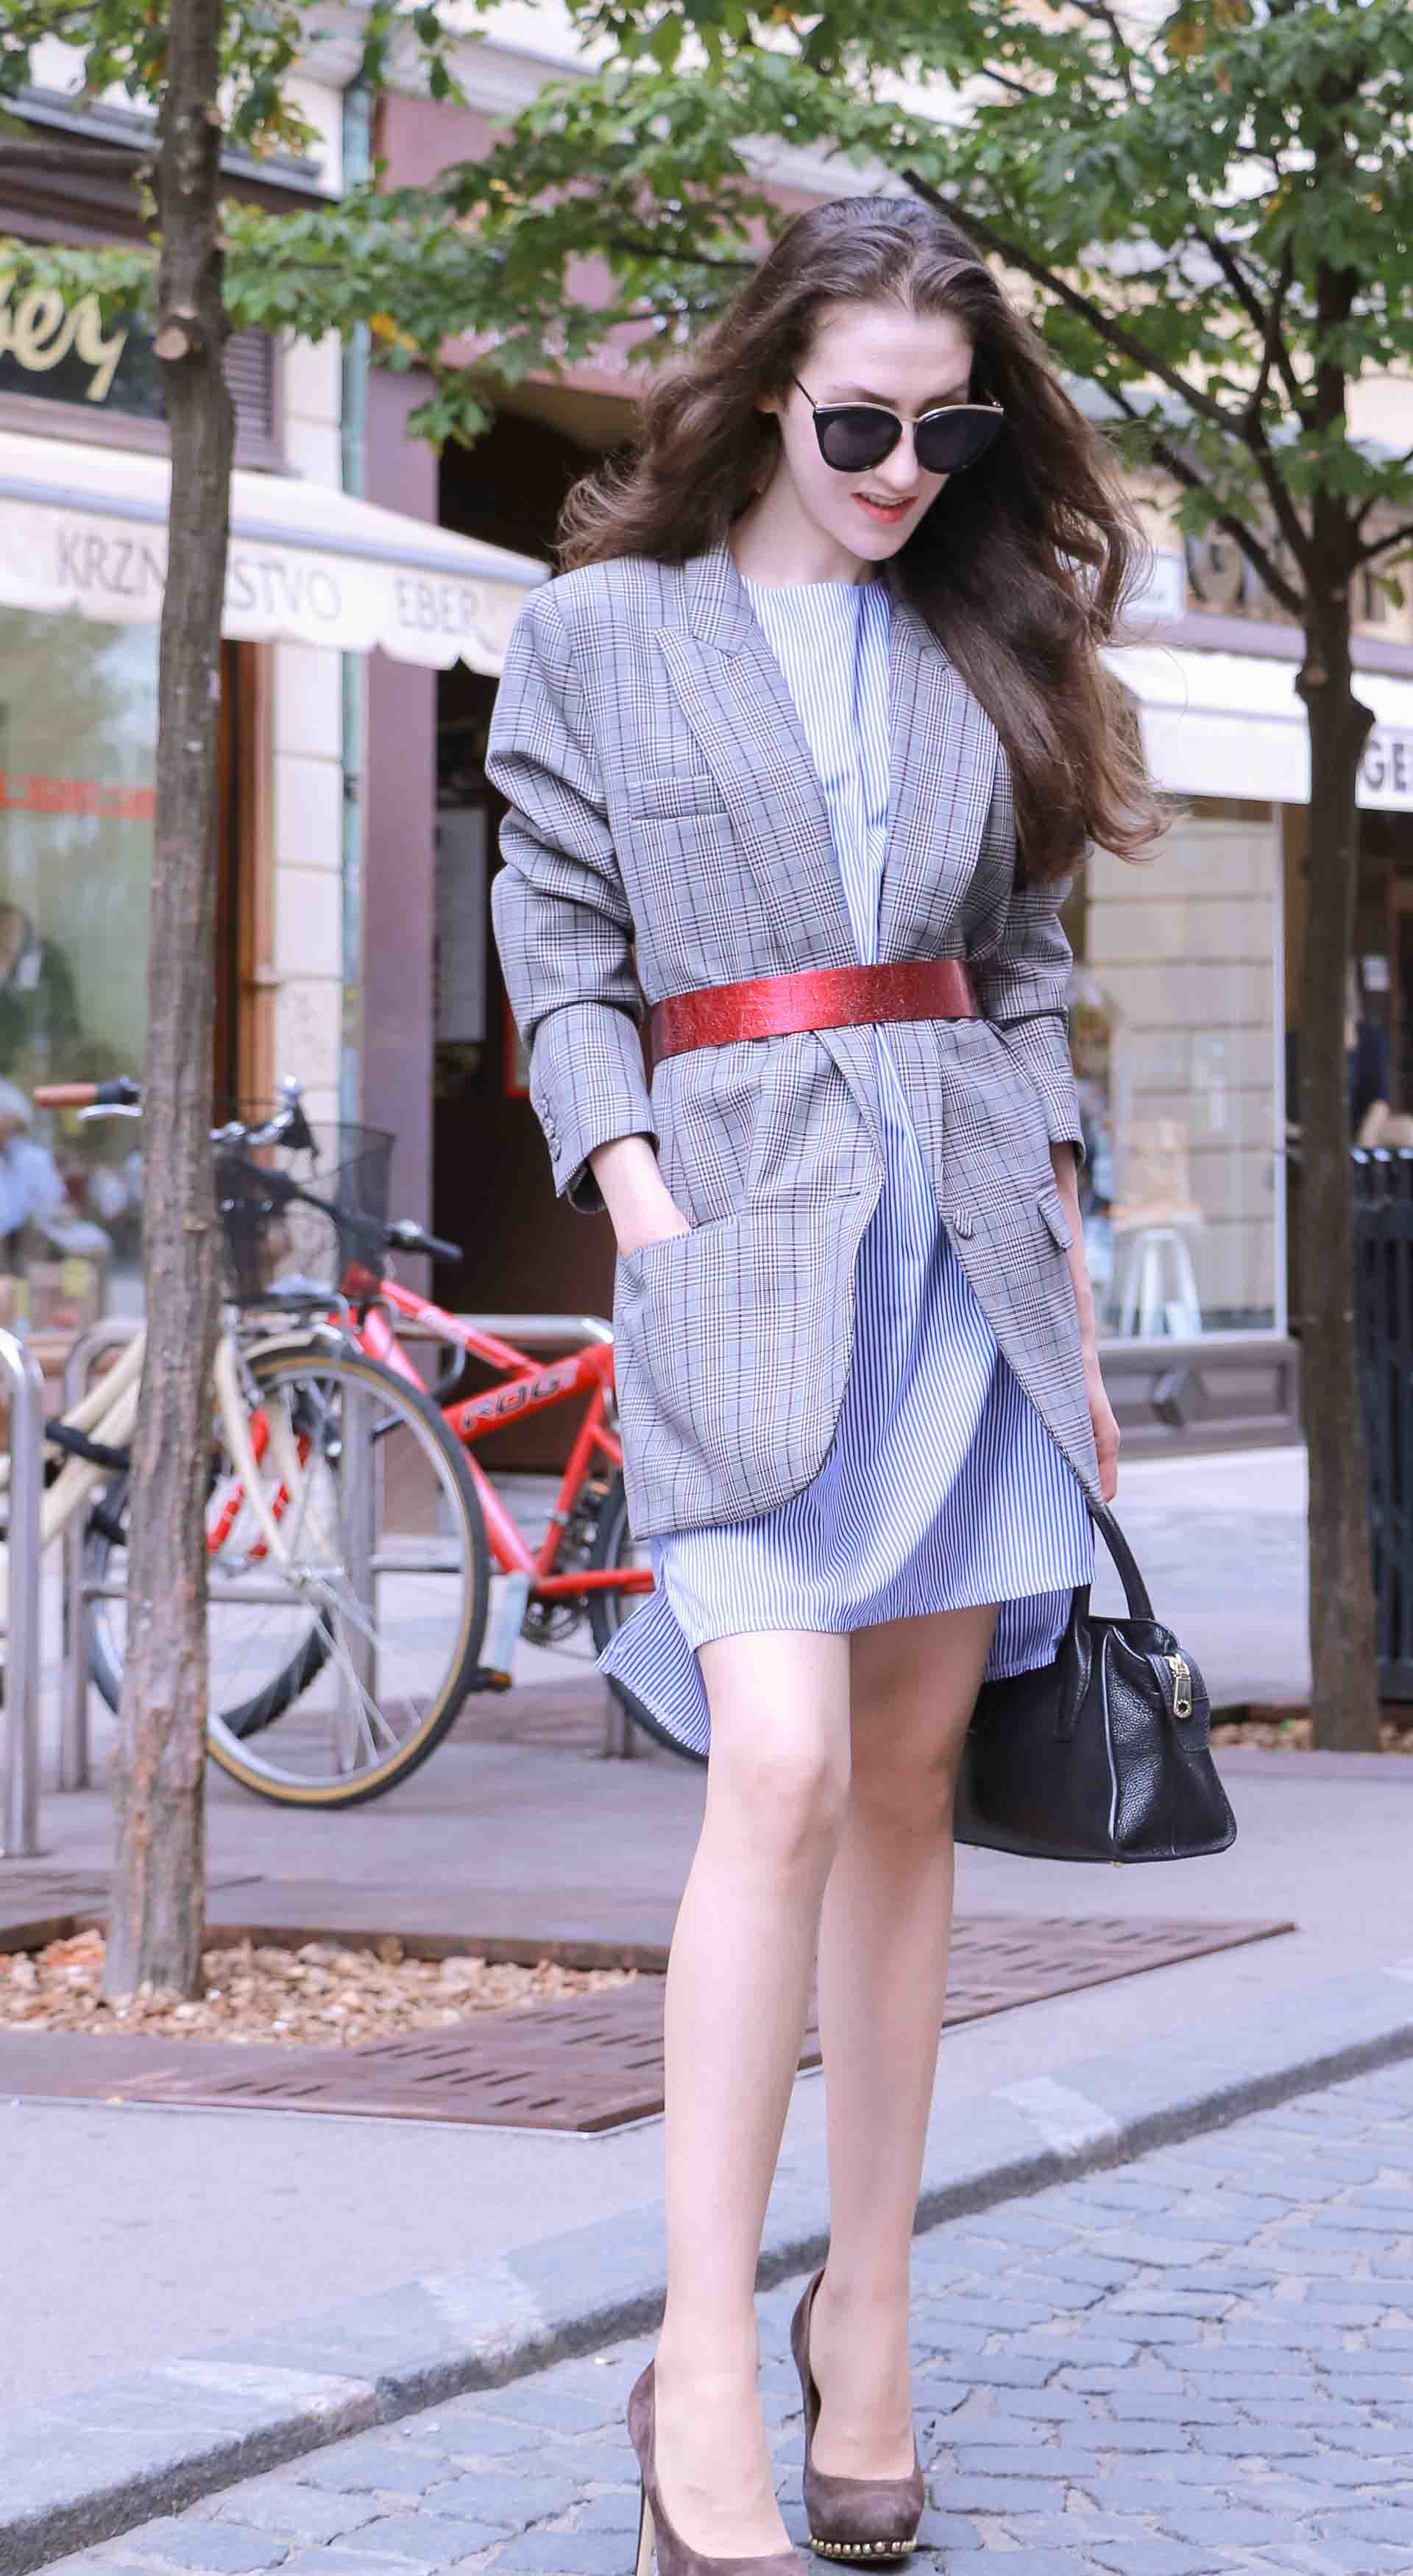 Veronika Lipar Fashion Blogger of Brunette from Wall Street wearing Erika Cavallini plaid blazer, blue striped shirtdress, red belt, brown court shoes, black top handle bag, Le Specs black shades while walking on the street